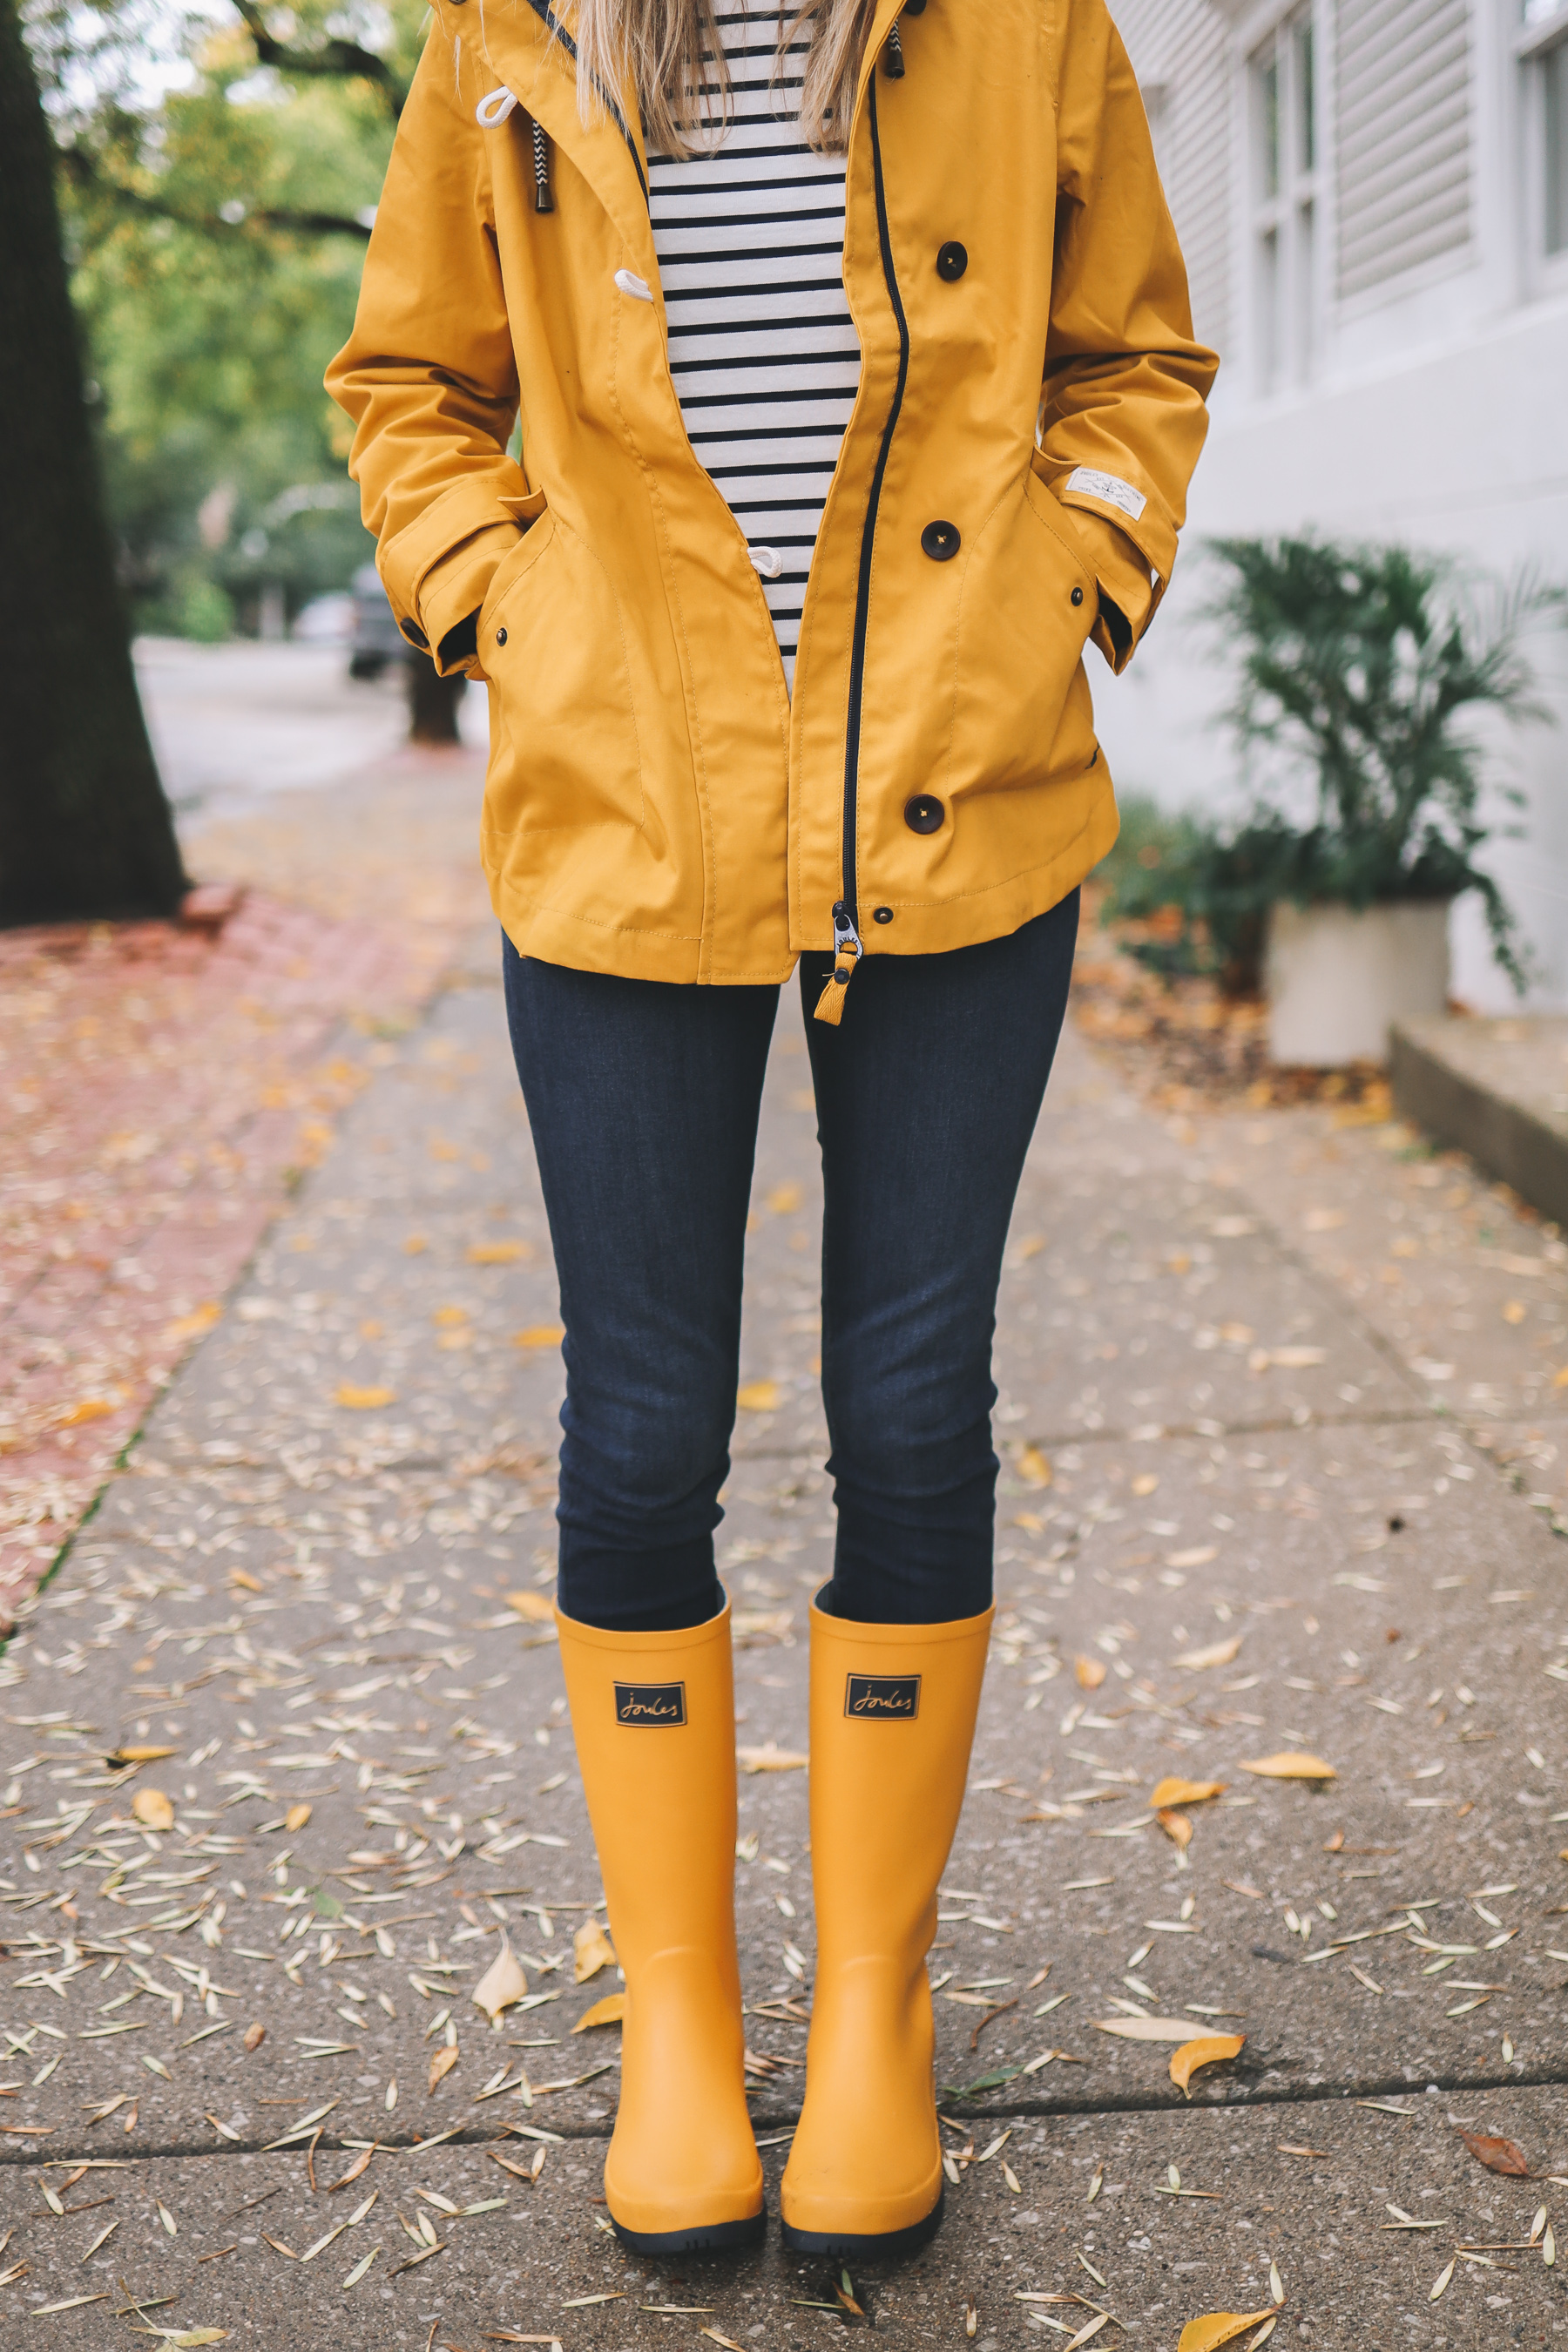 yellow rain gear